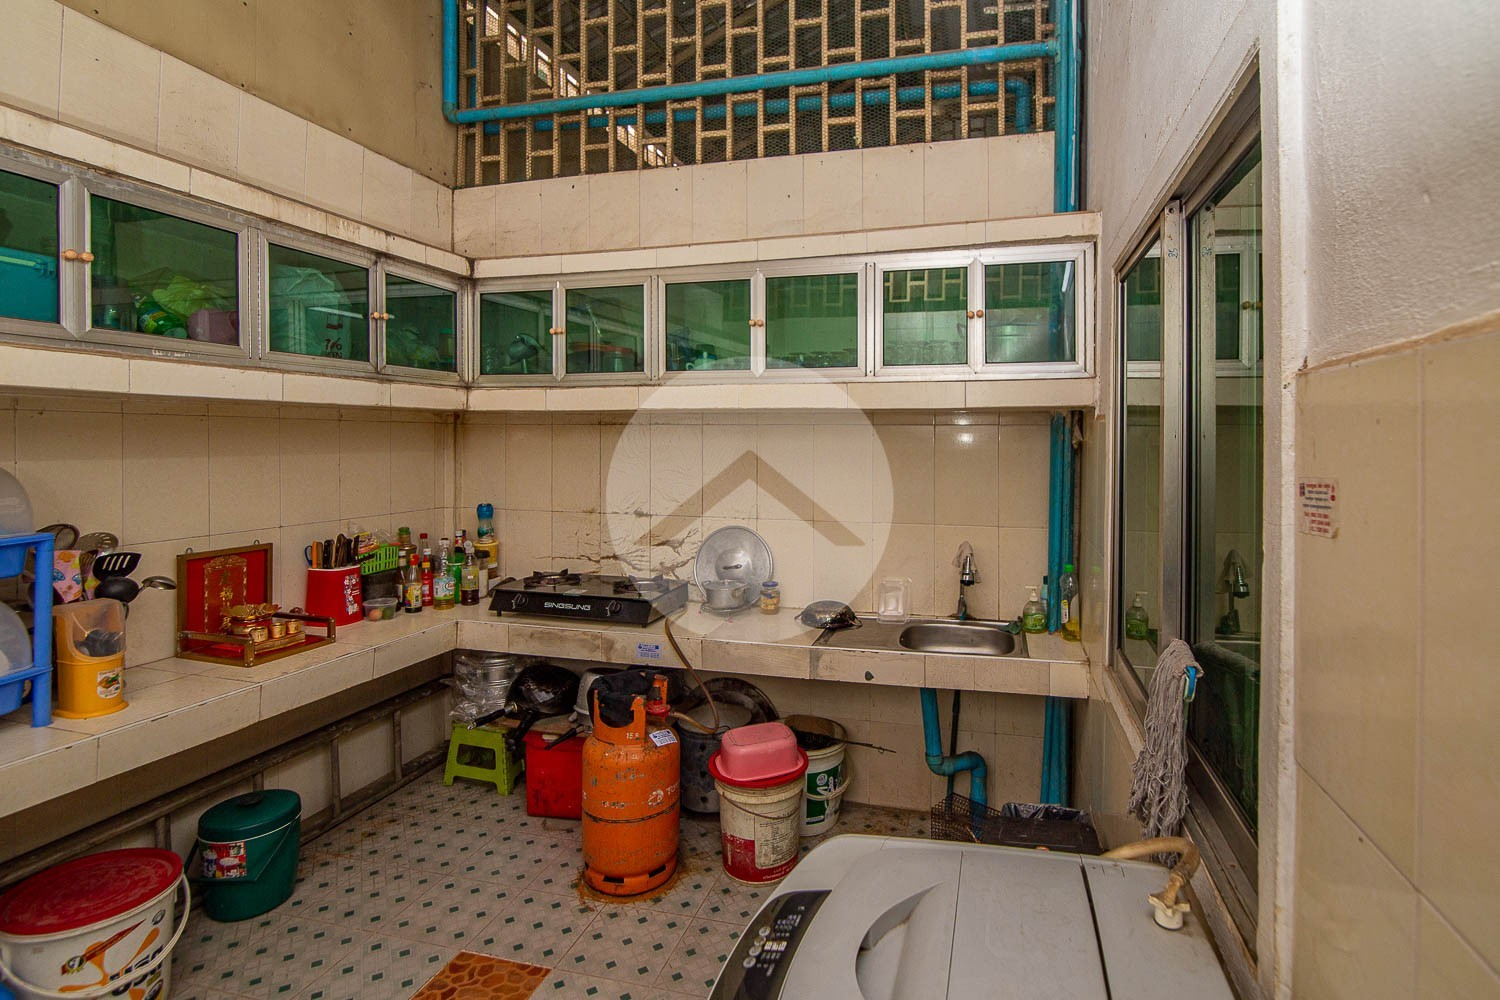 4 Bedroom Flat For Sale - Khan Meanchey, Phnom Penh